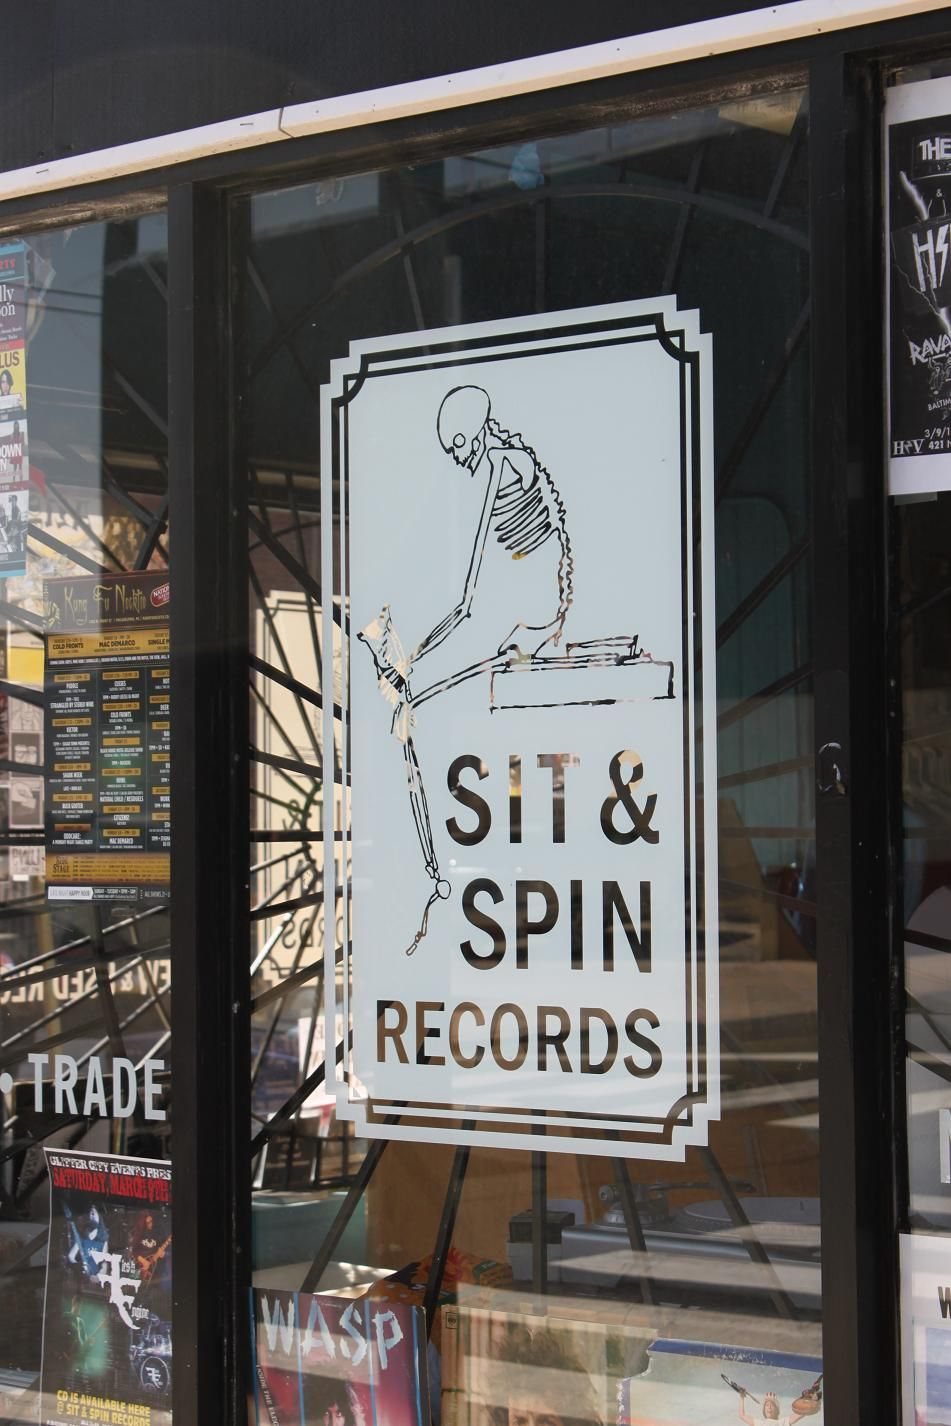 Vinyl record shop image by on Record